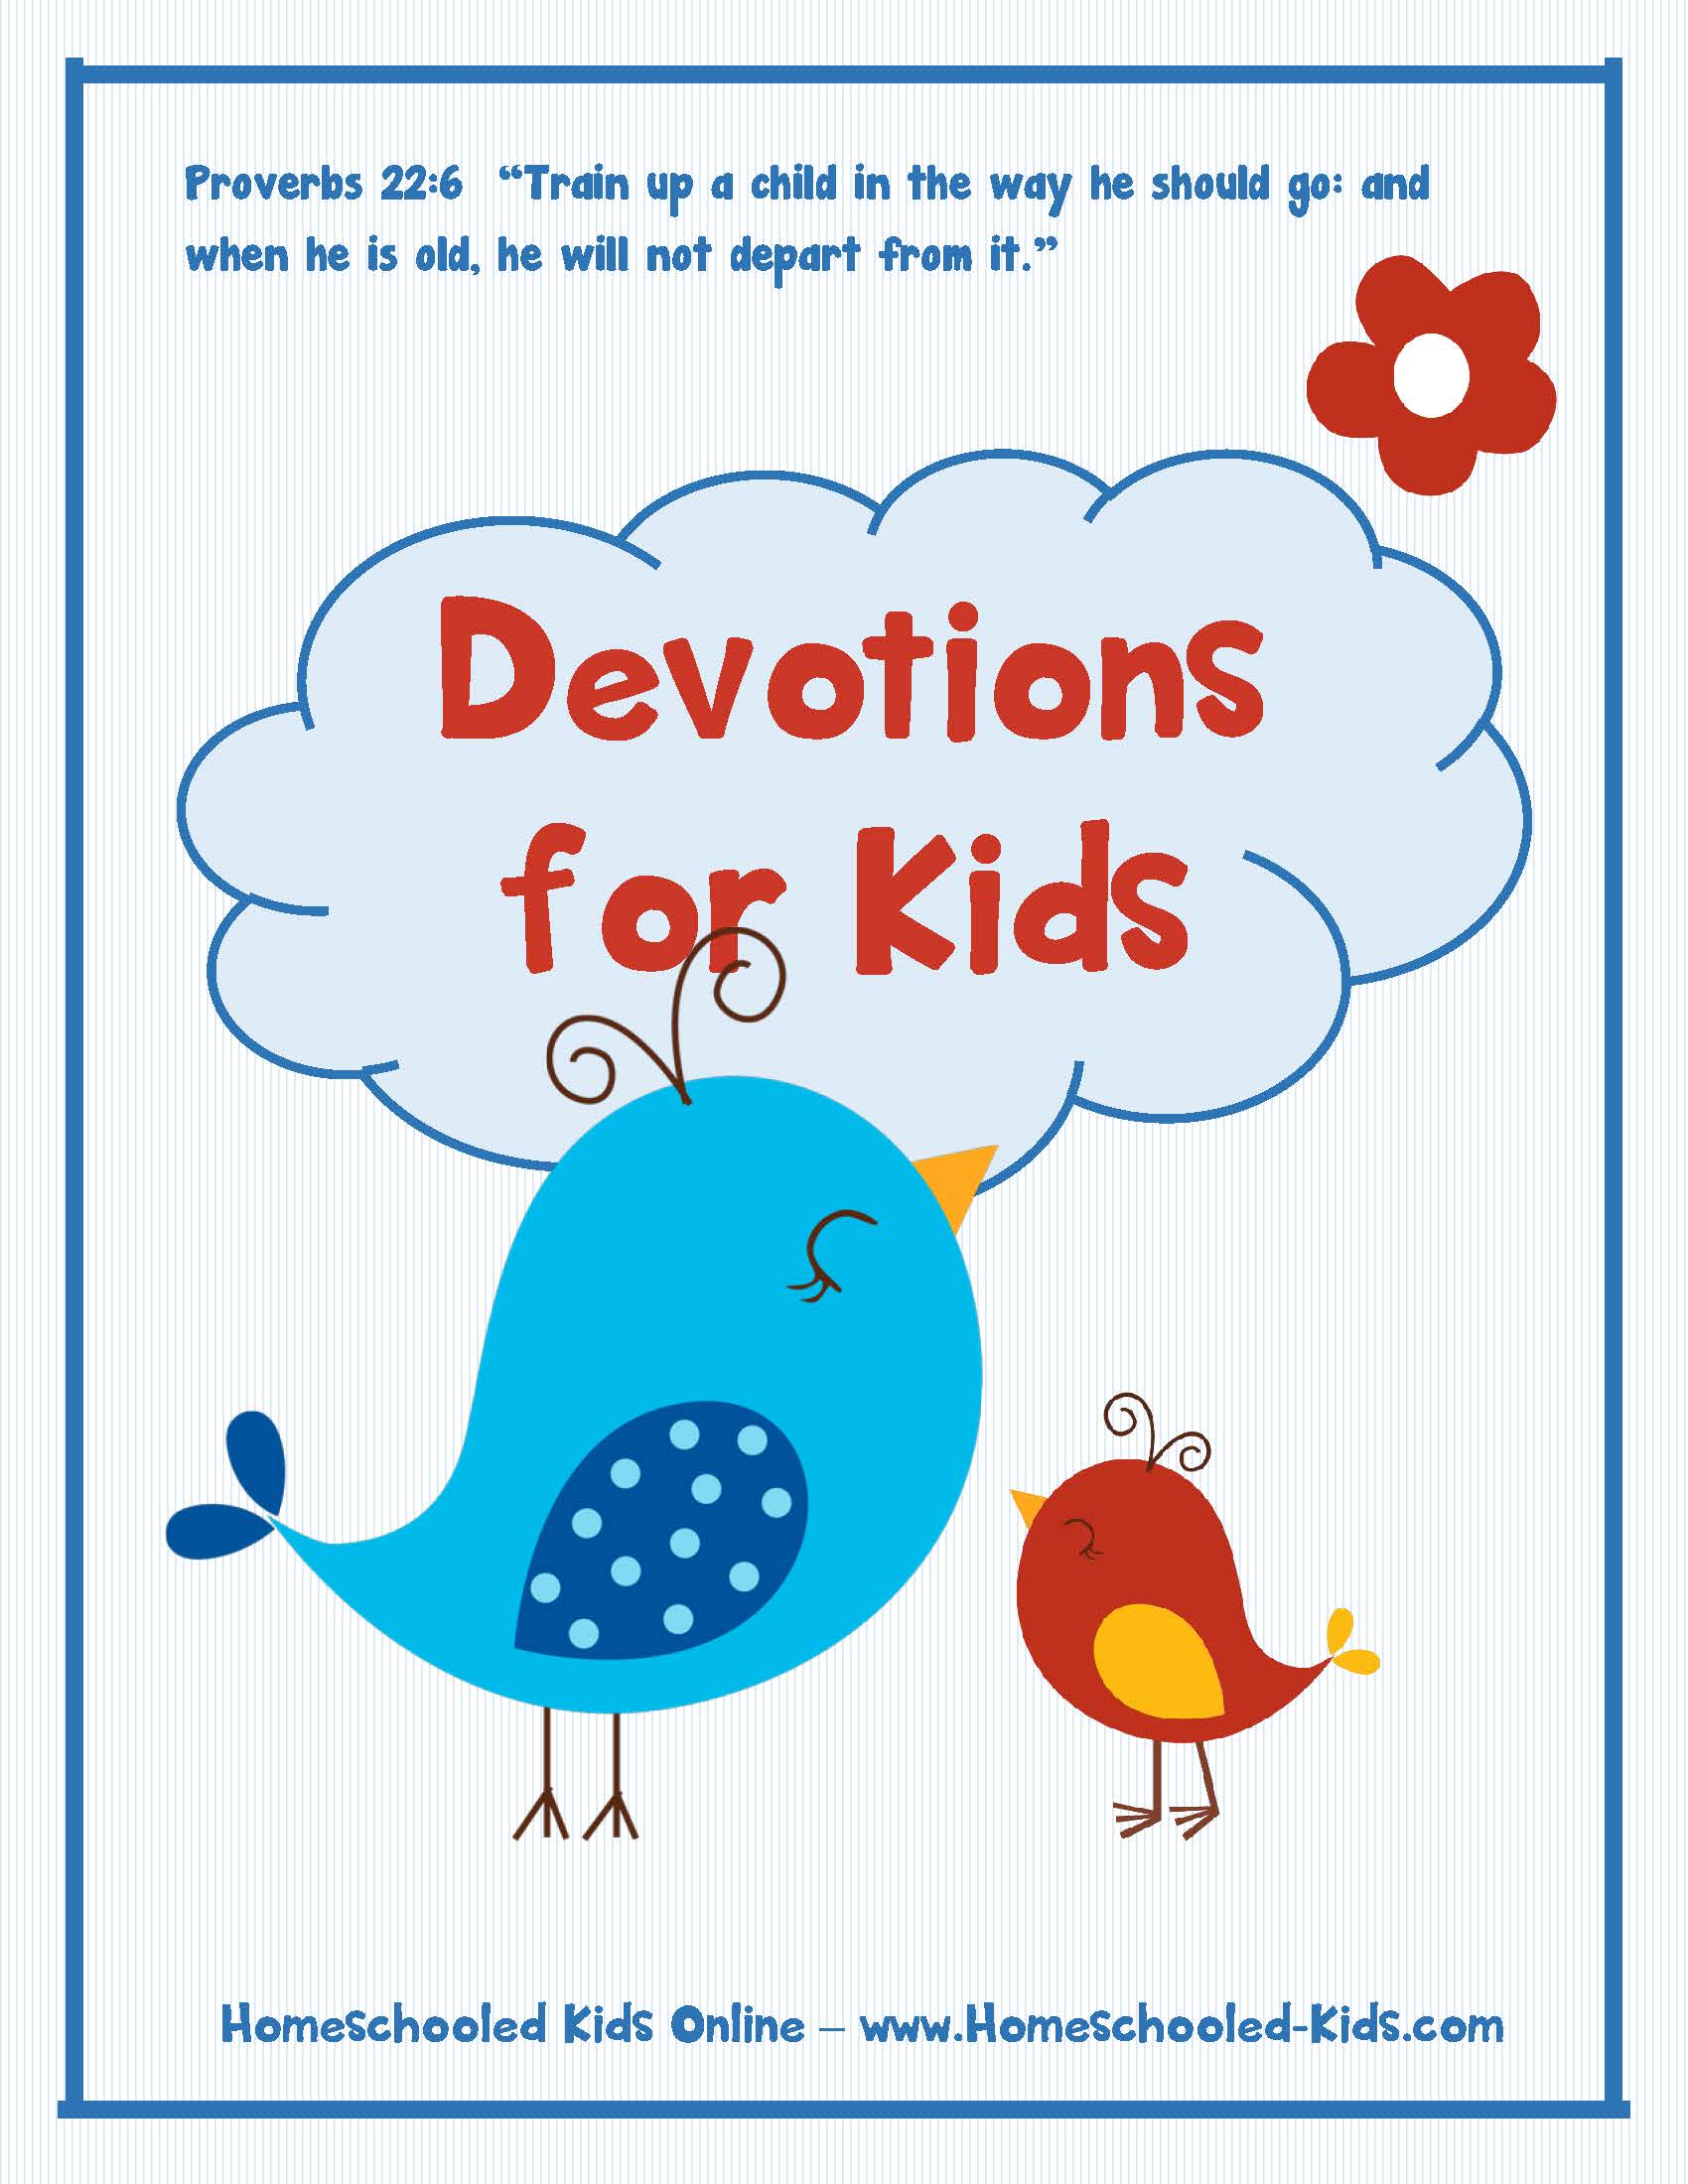 photograph regarding Printable Devotions for Tweens named Devotions for Young children Homeschooled Children On-line